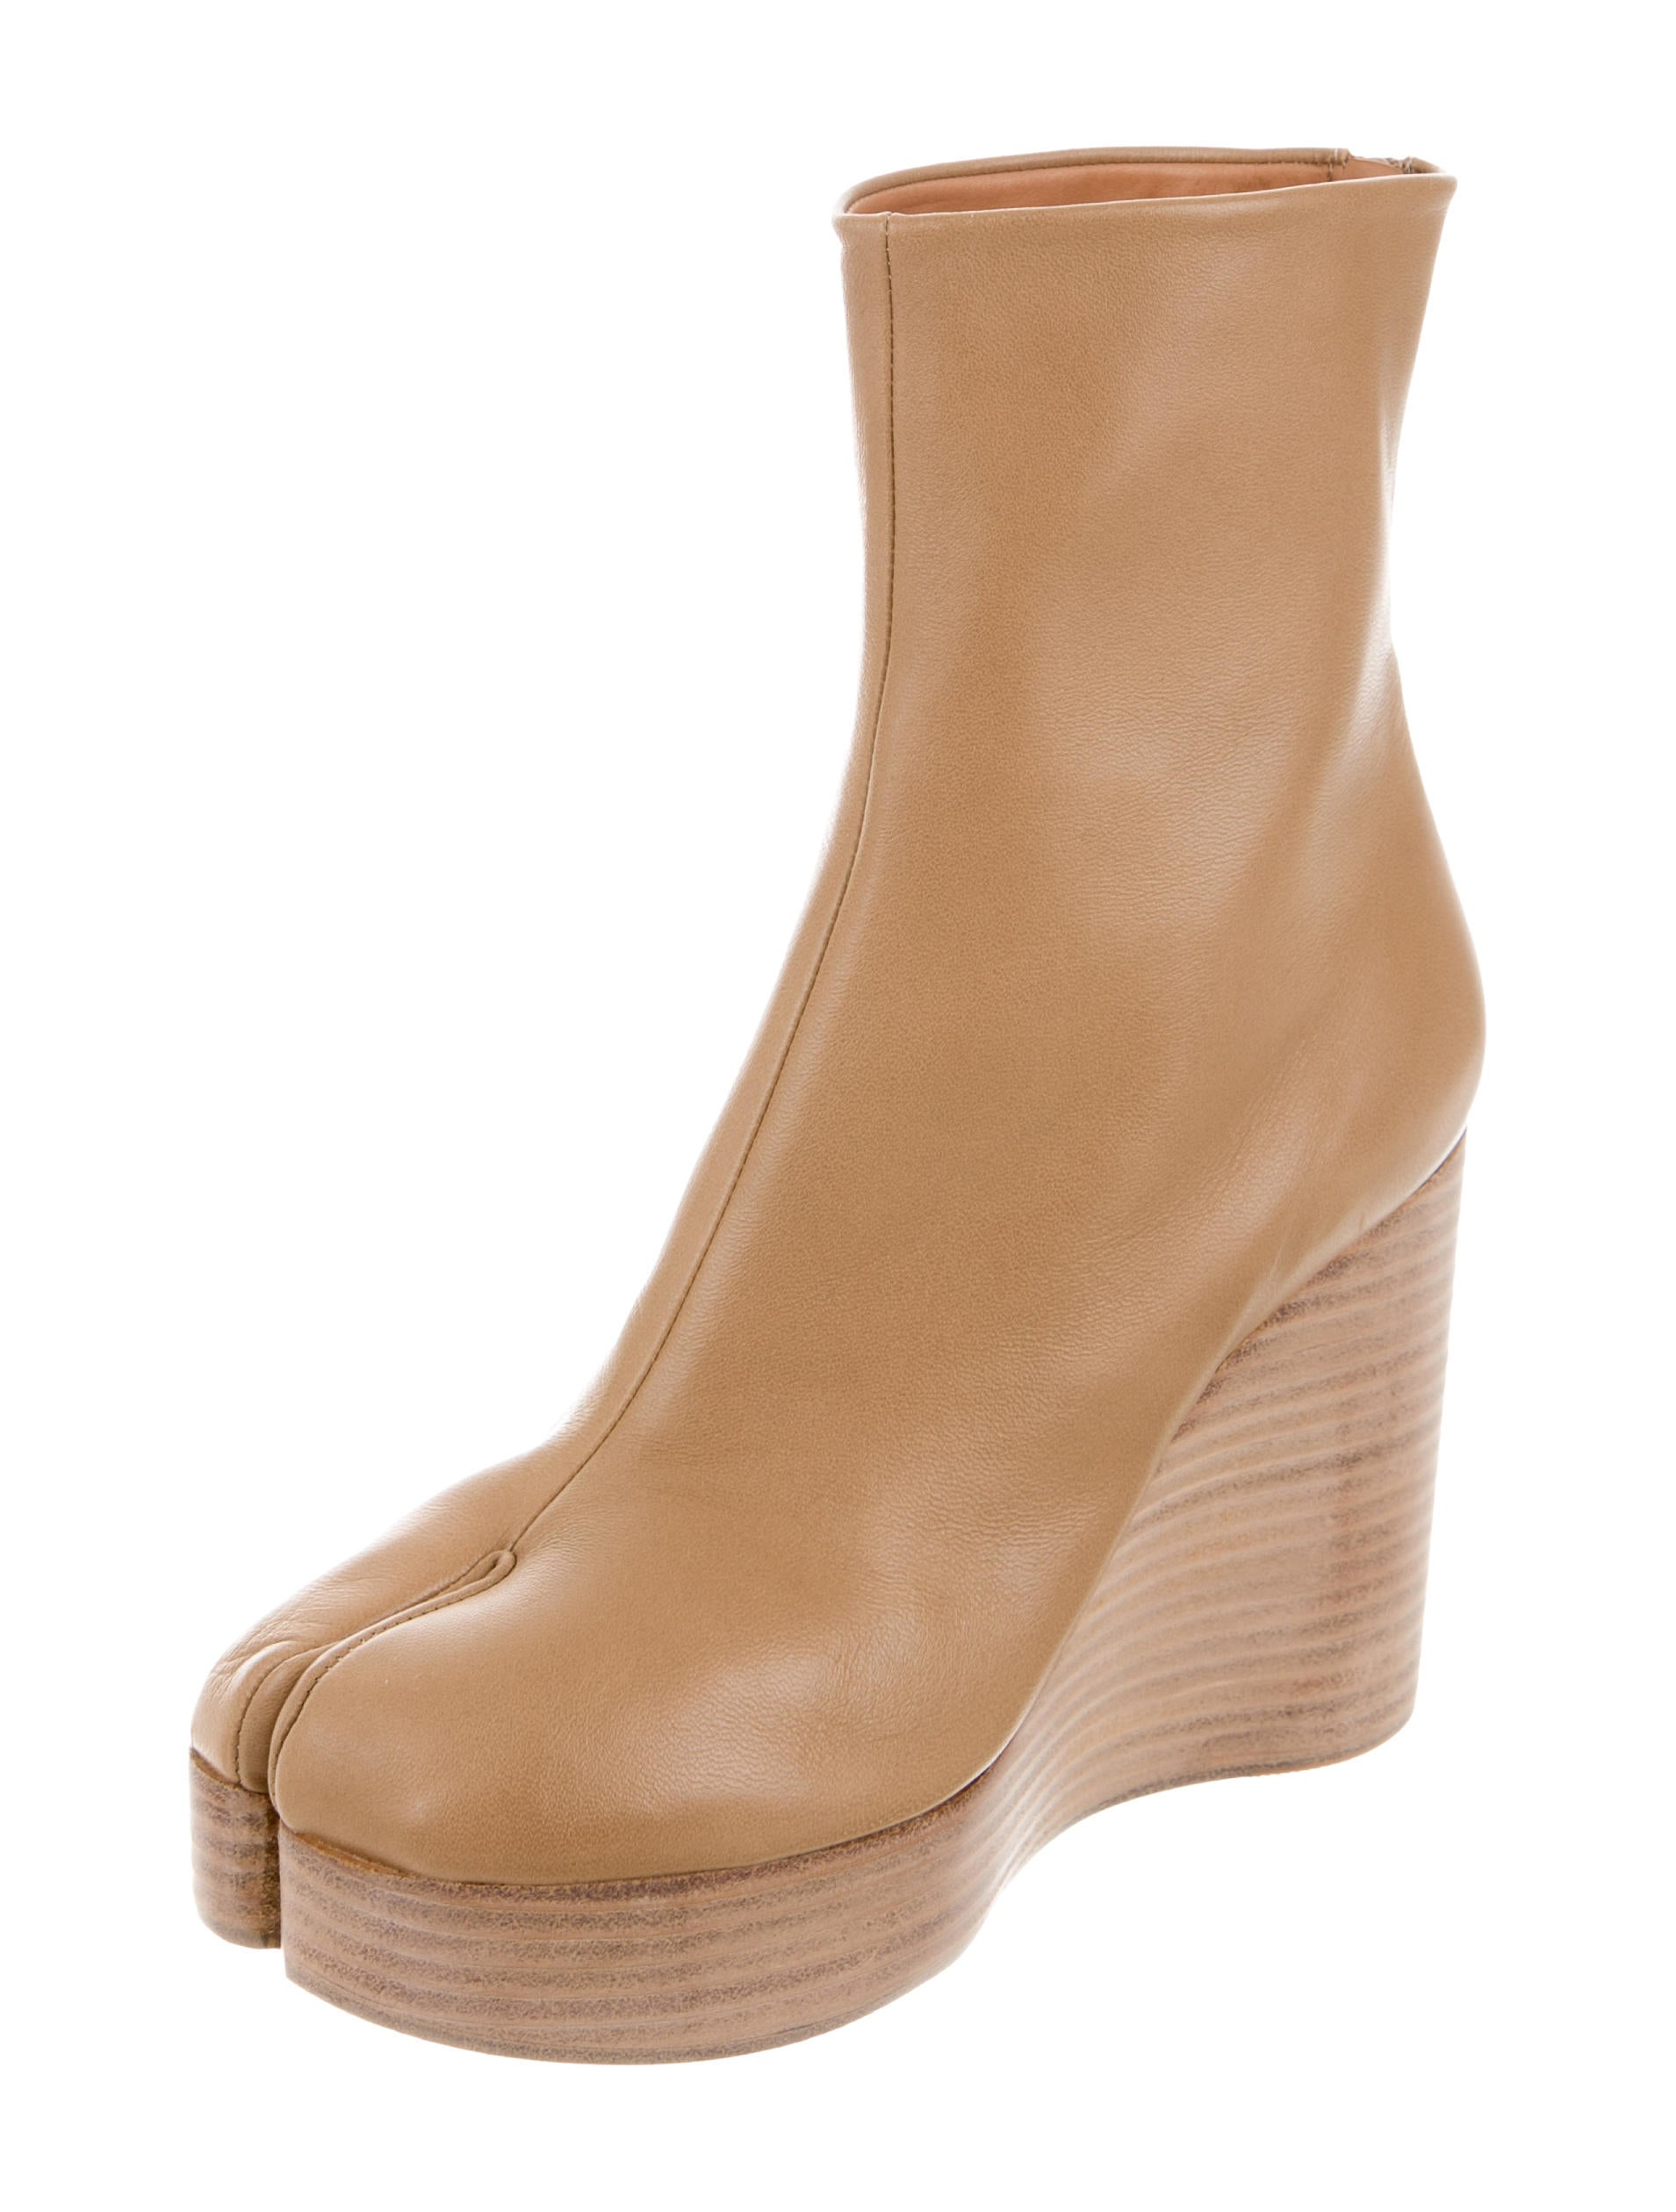 new arrival sale online discount how much Maison Margiela Leather Wedge Booties w/ Tags uQRwqScUyS